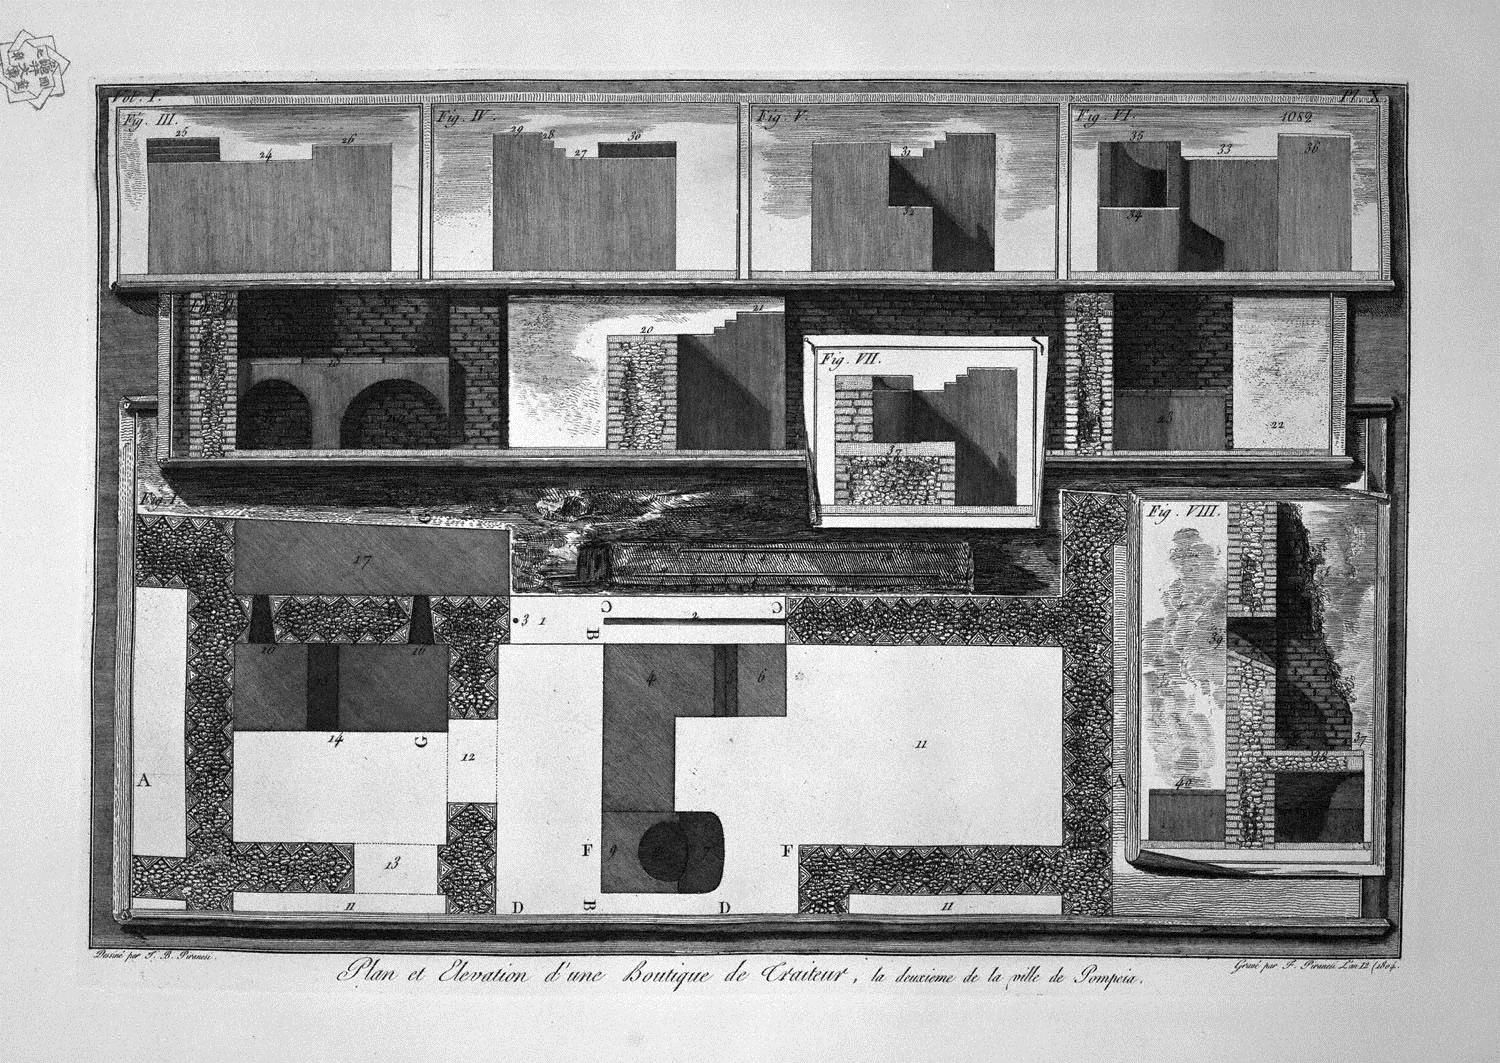 plans-of-elevations-and-sections-of-thermopolium.jpg 1.500 ×1.063 pixels